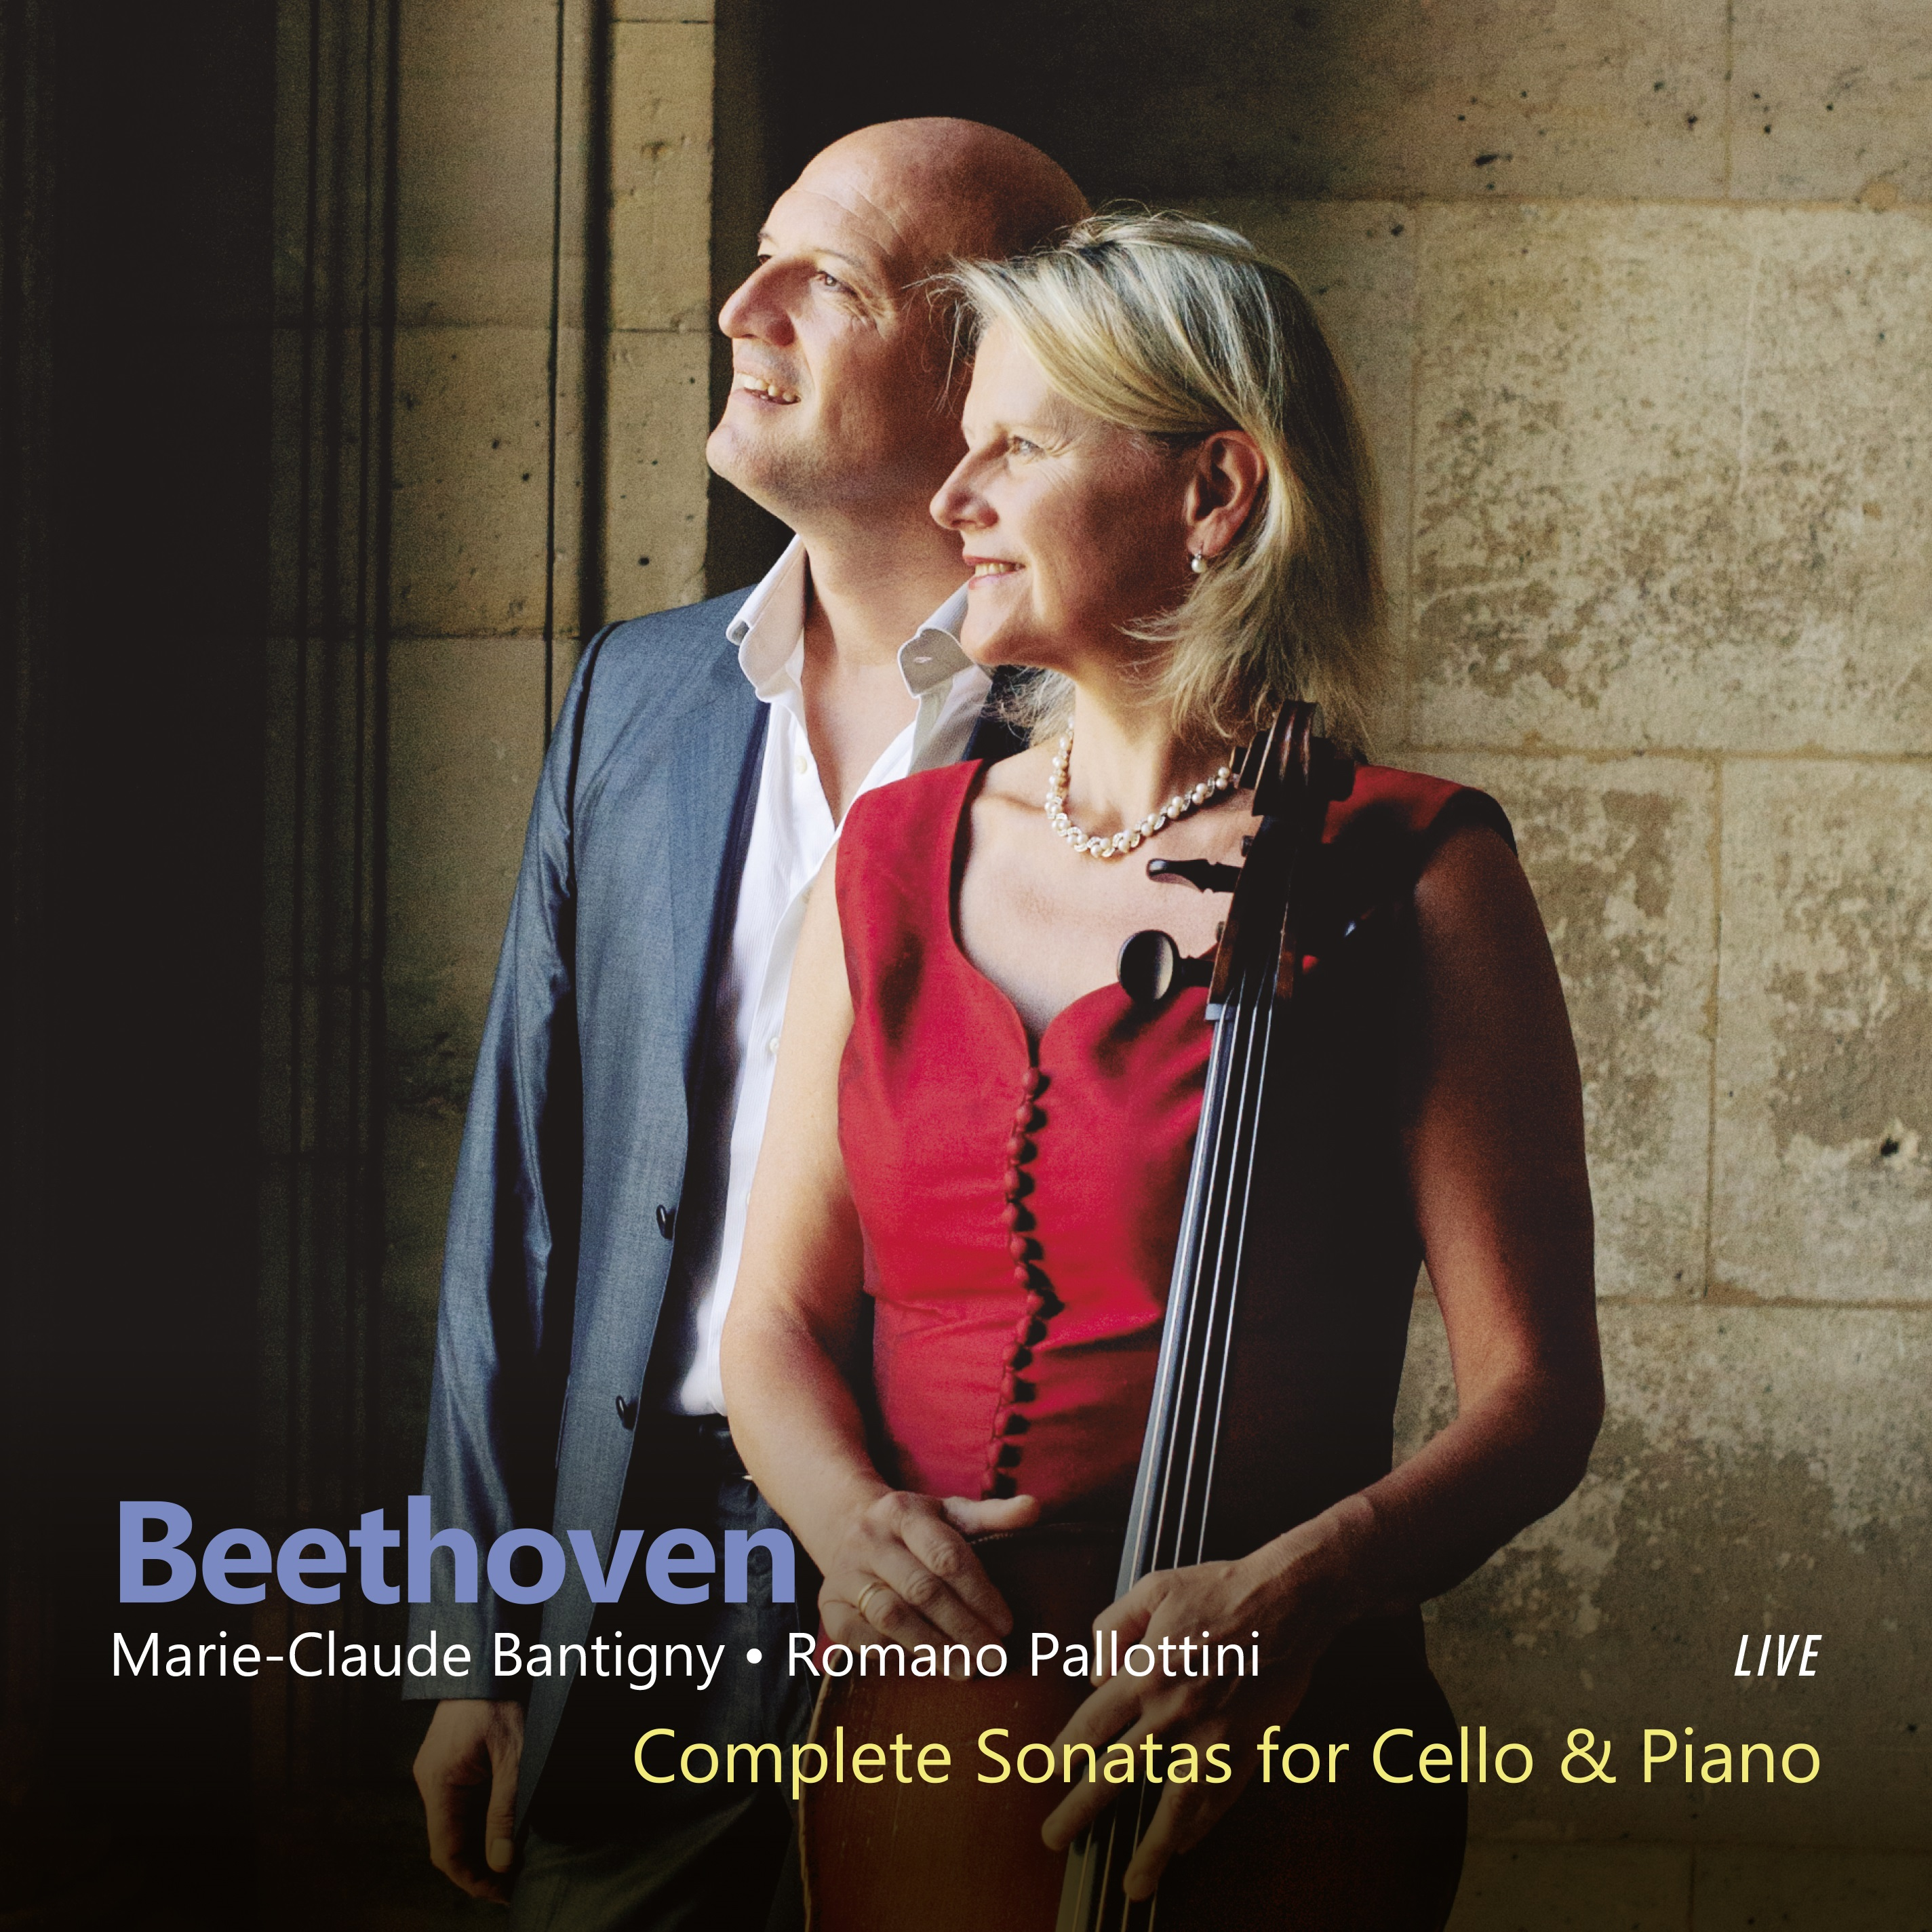 Beethoven, complete sonatas for cello & piano